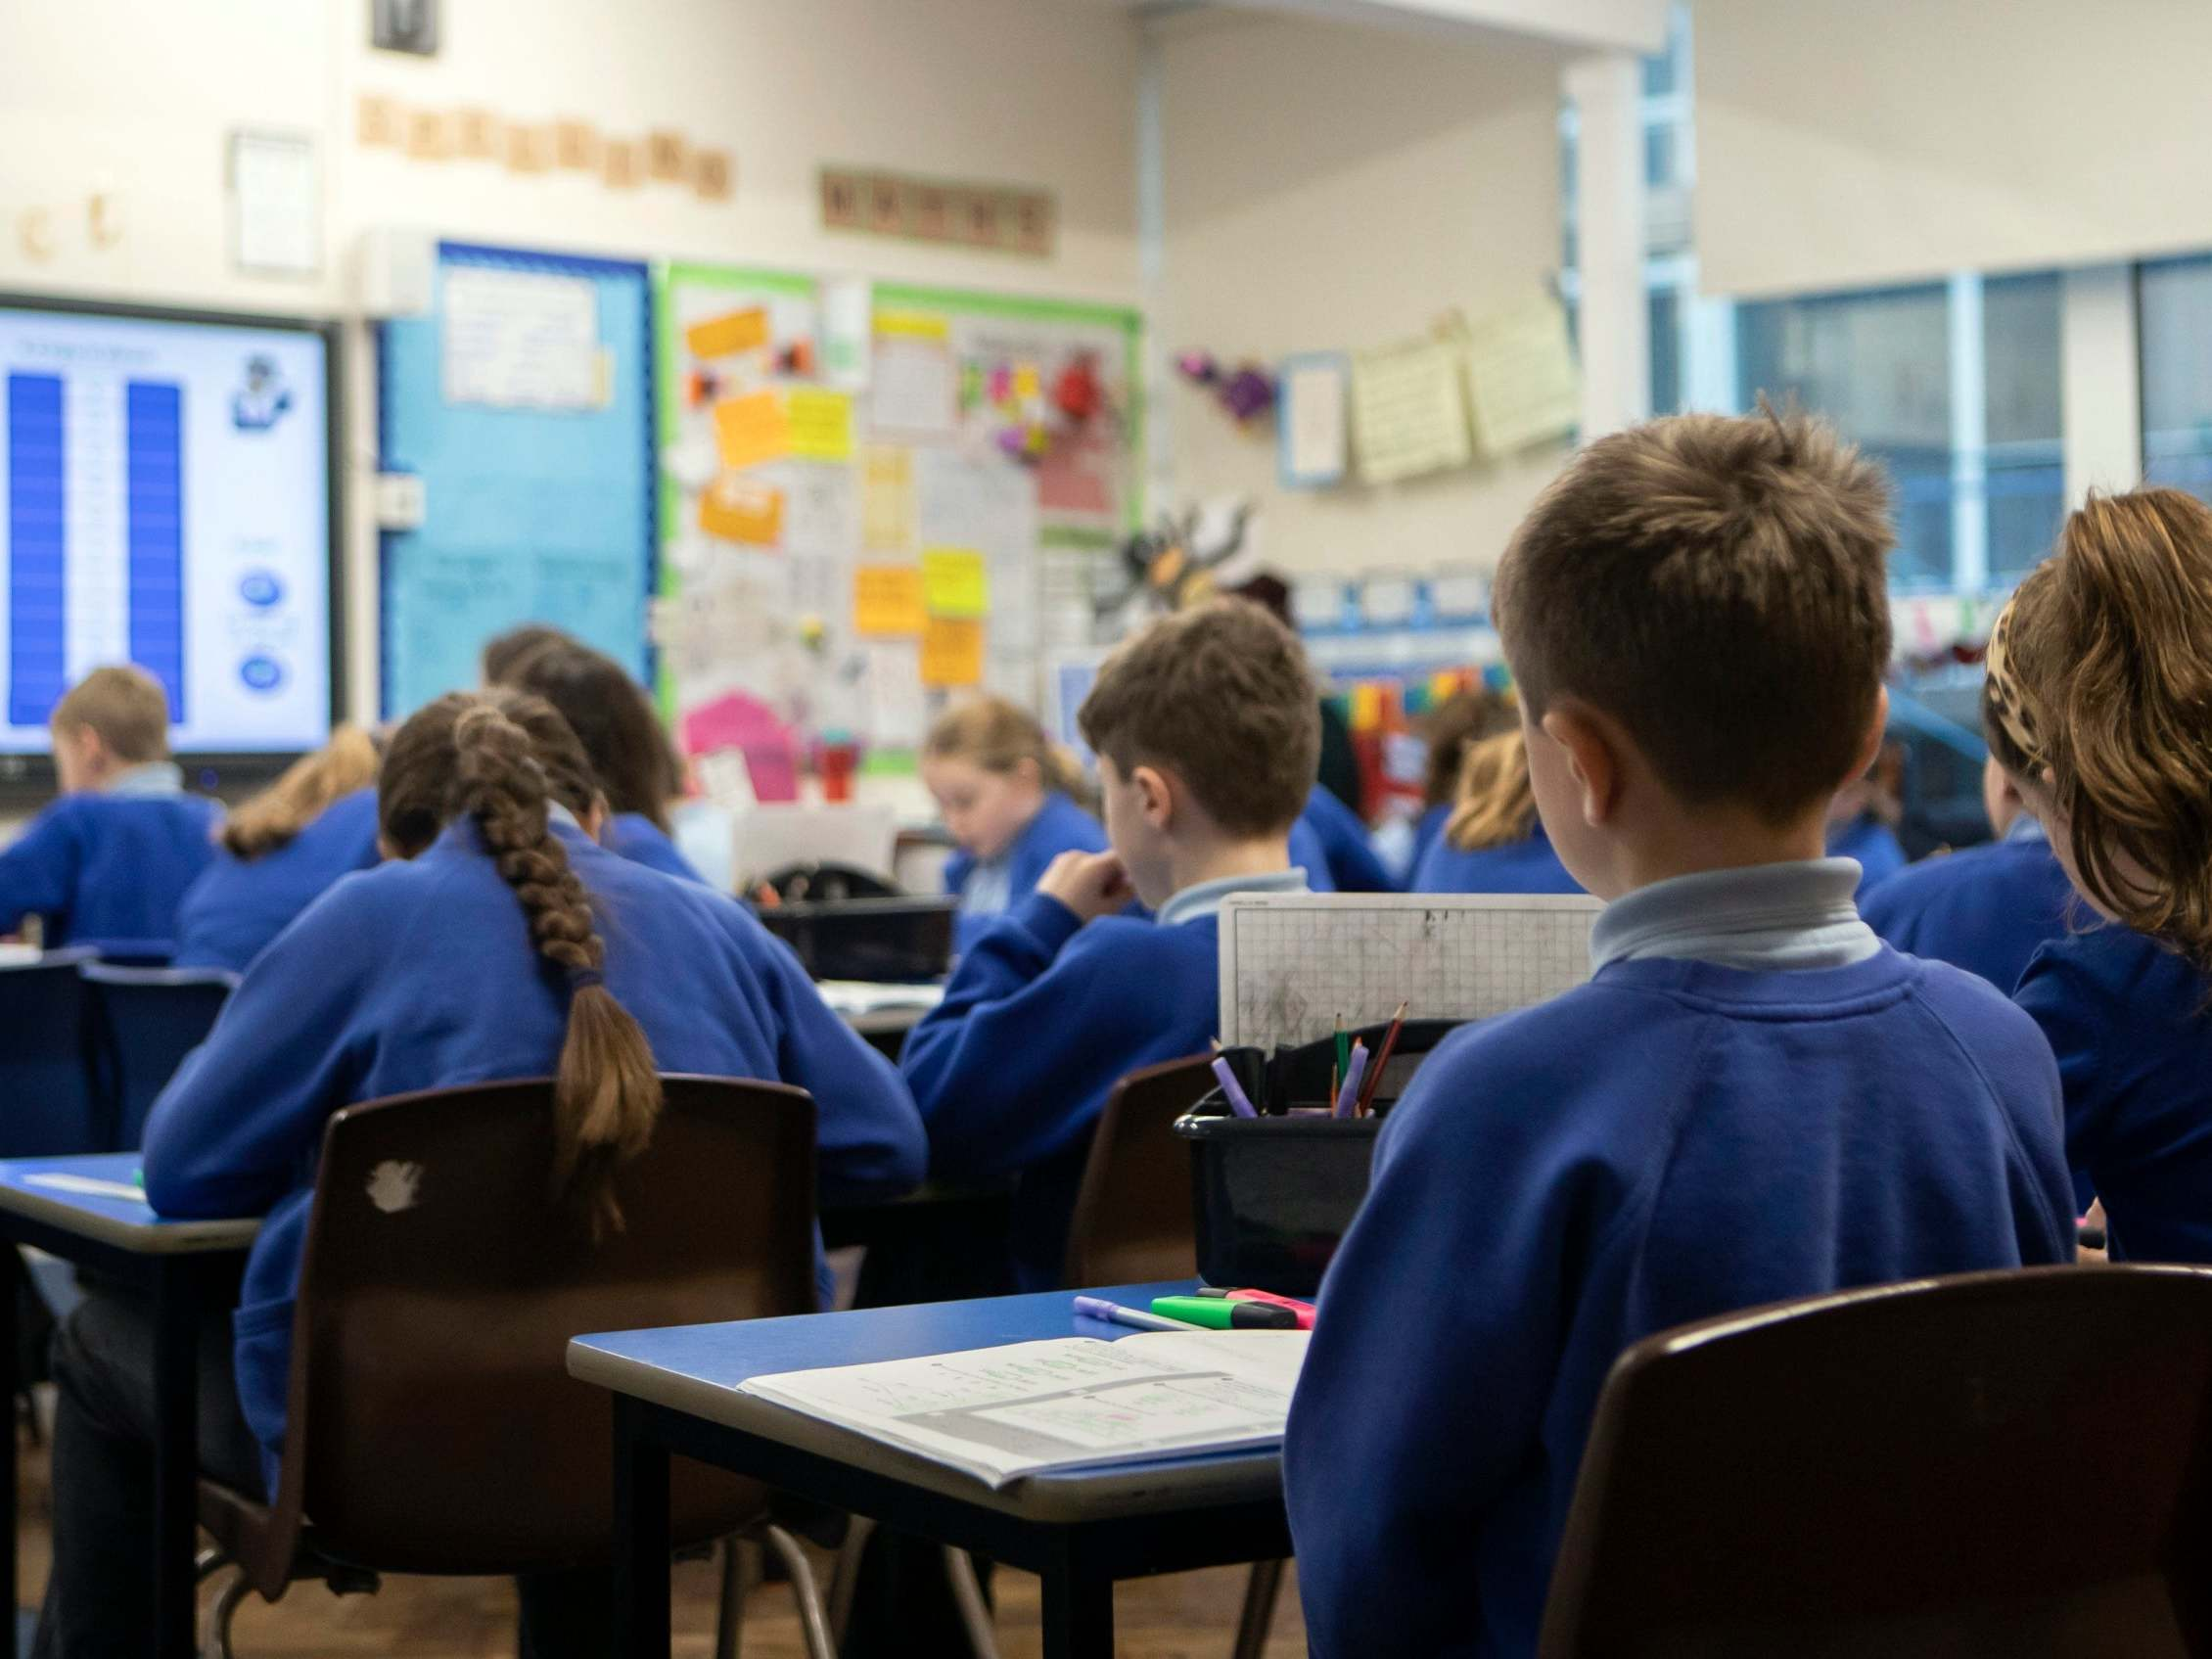 Pupils will need to go to summer school, says children's commissioner